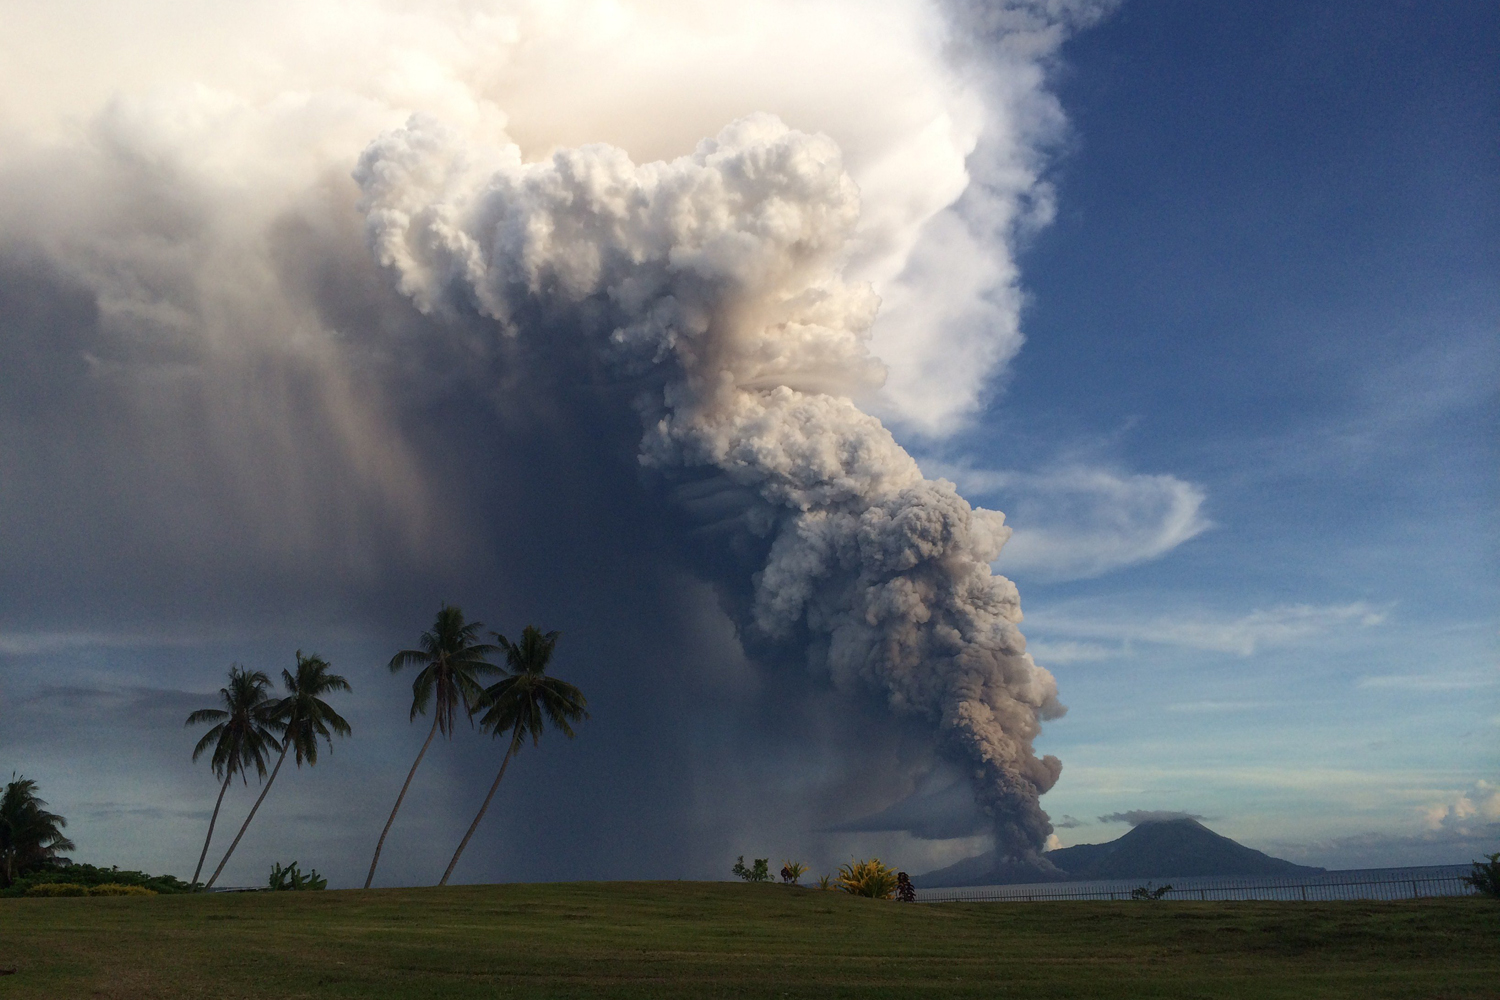 Aug. 29, 2014. Mount Tavurvur erupting in eastern Papua New Guinea, spewing rocks and ash into the air, forcing the evacuation of local communities and international flights to be re-routed.